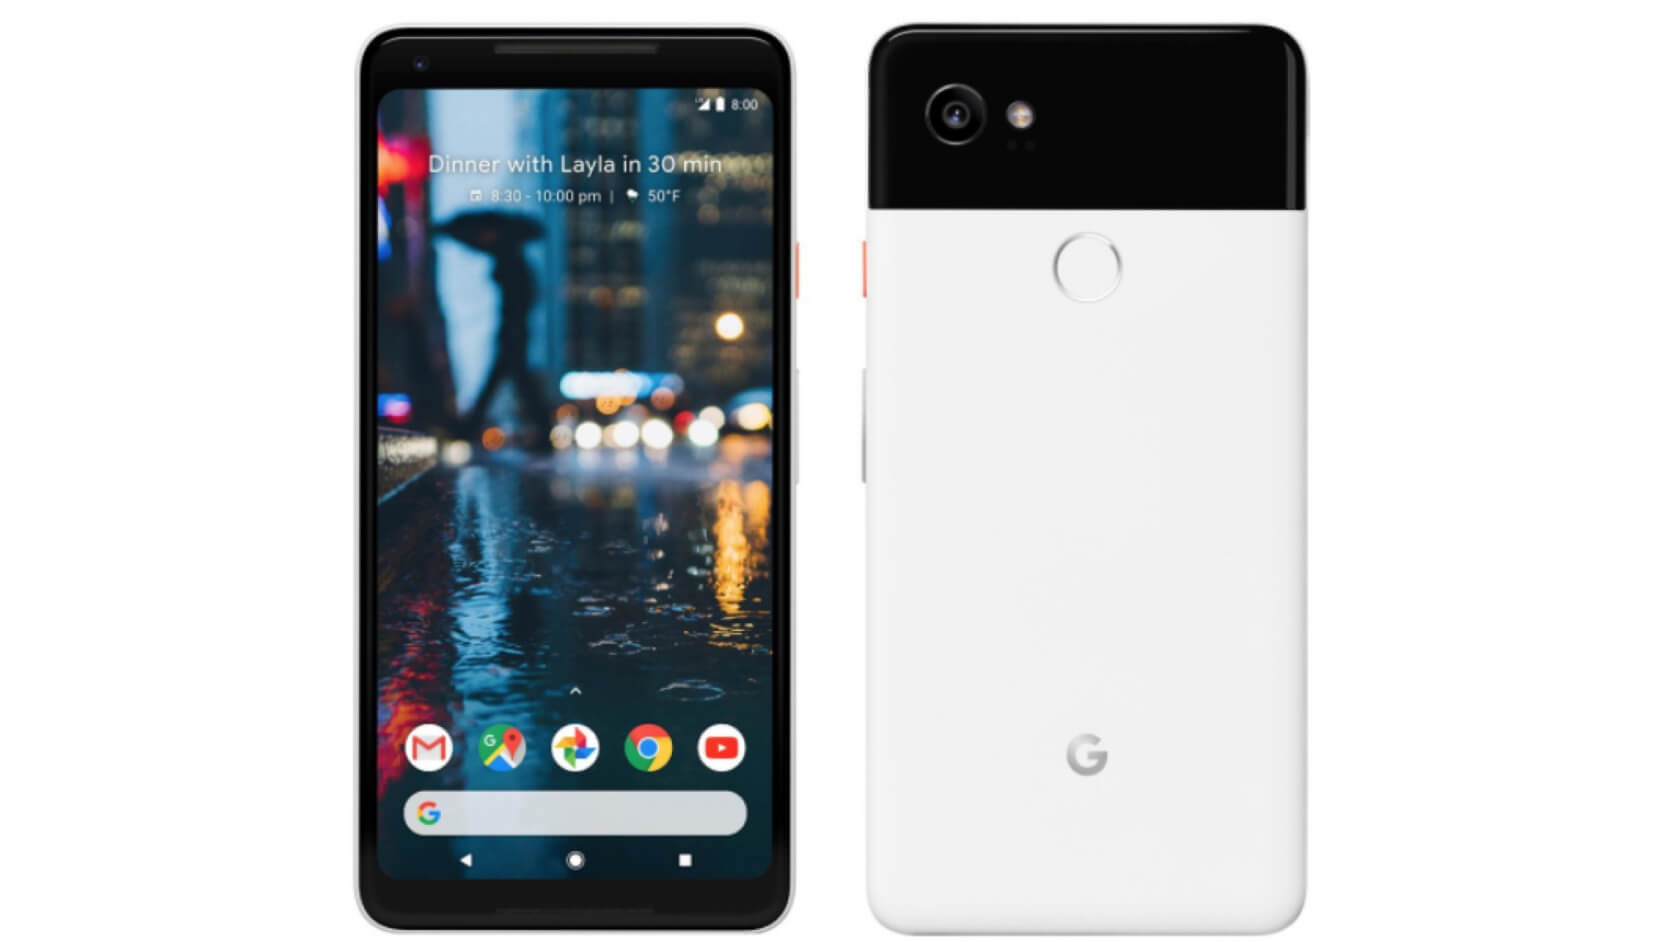 Google addresses Pixel 2 XL display issues with software update and 2-year warranty